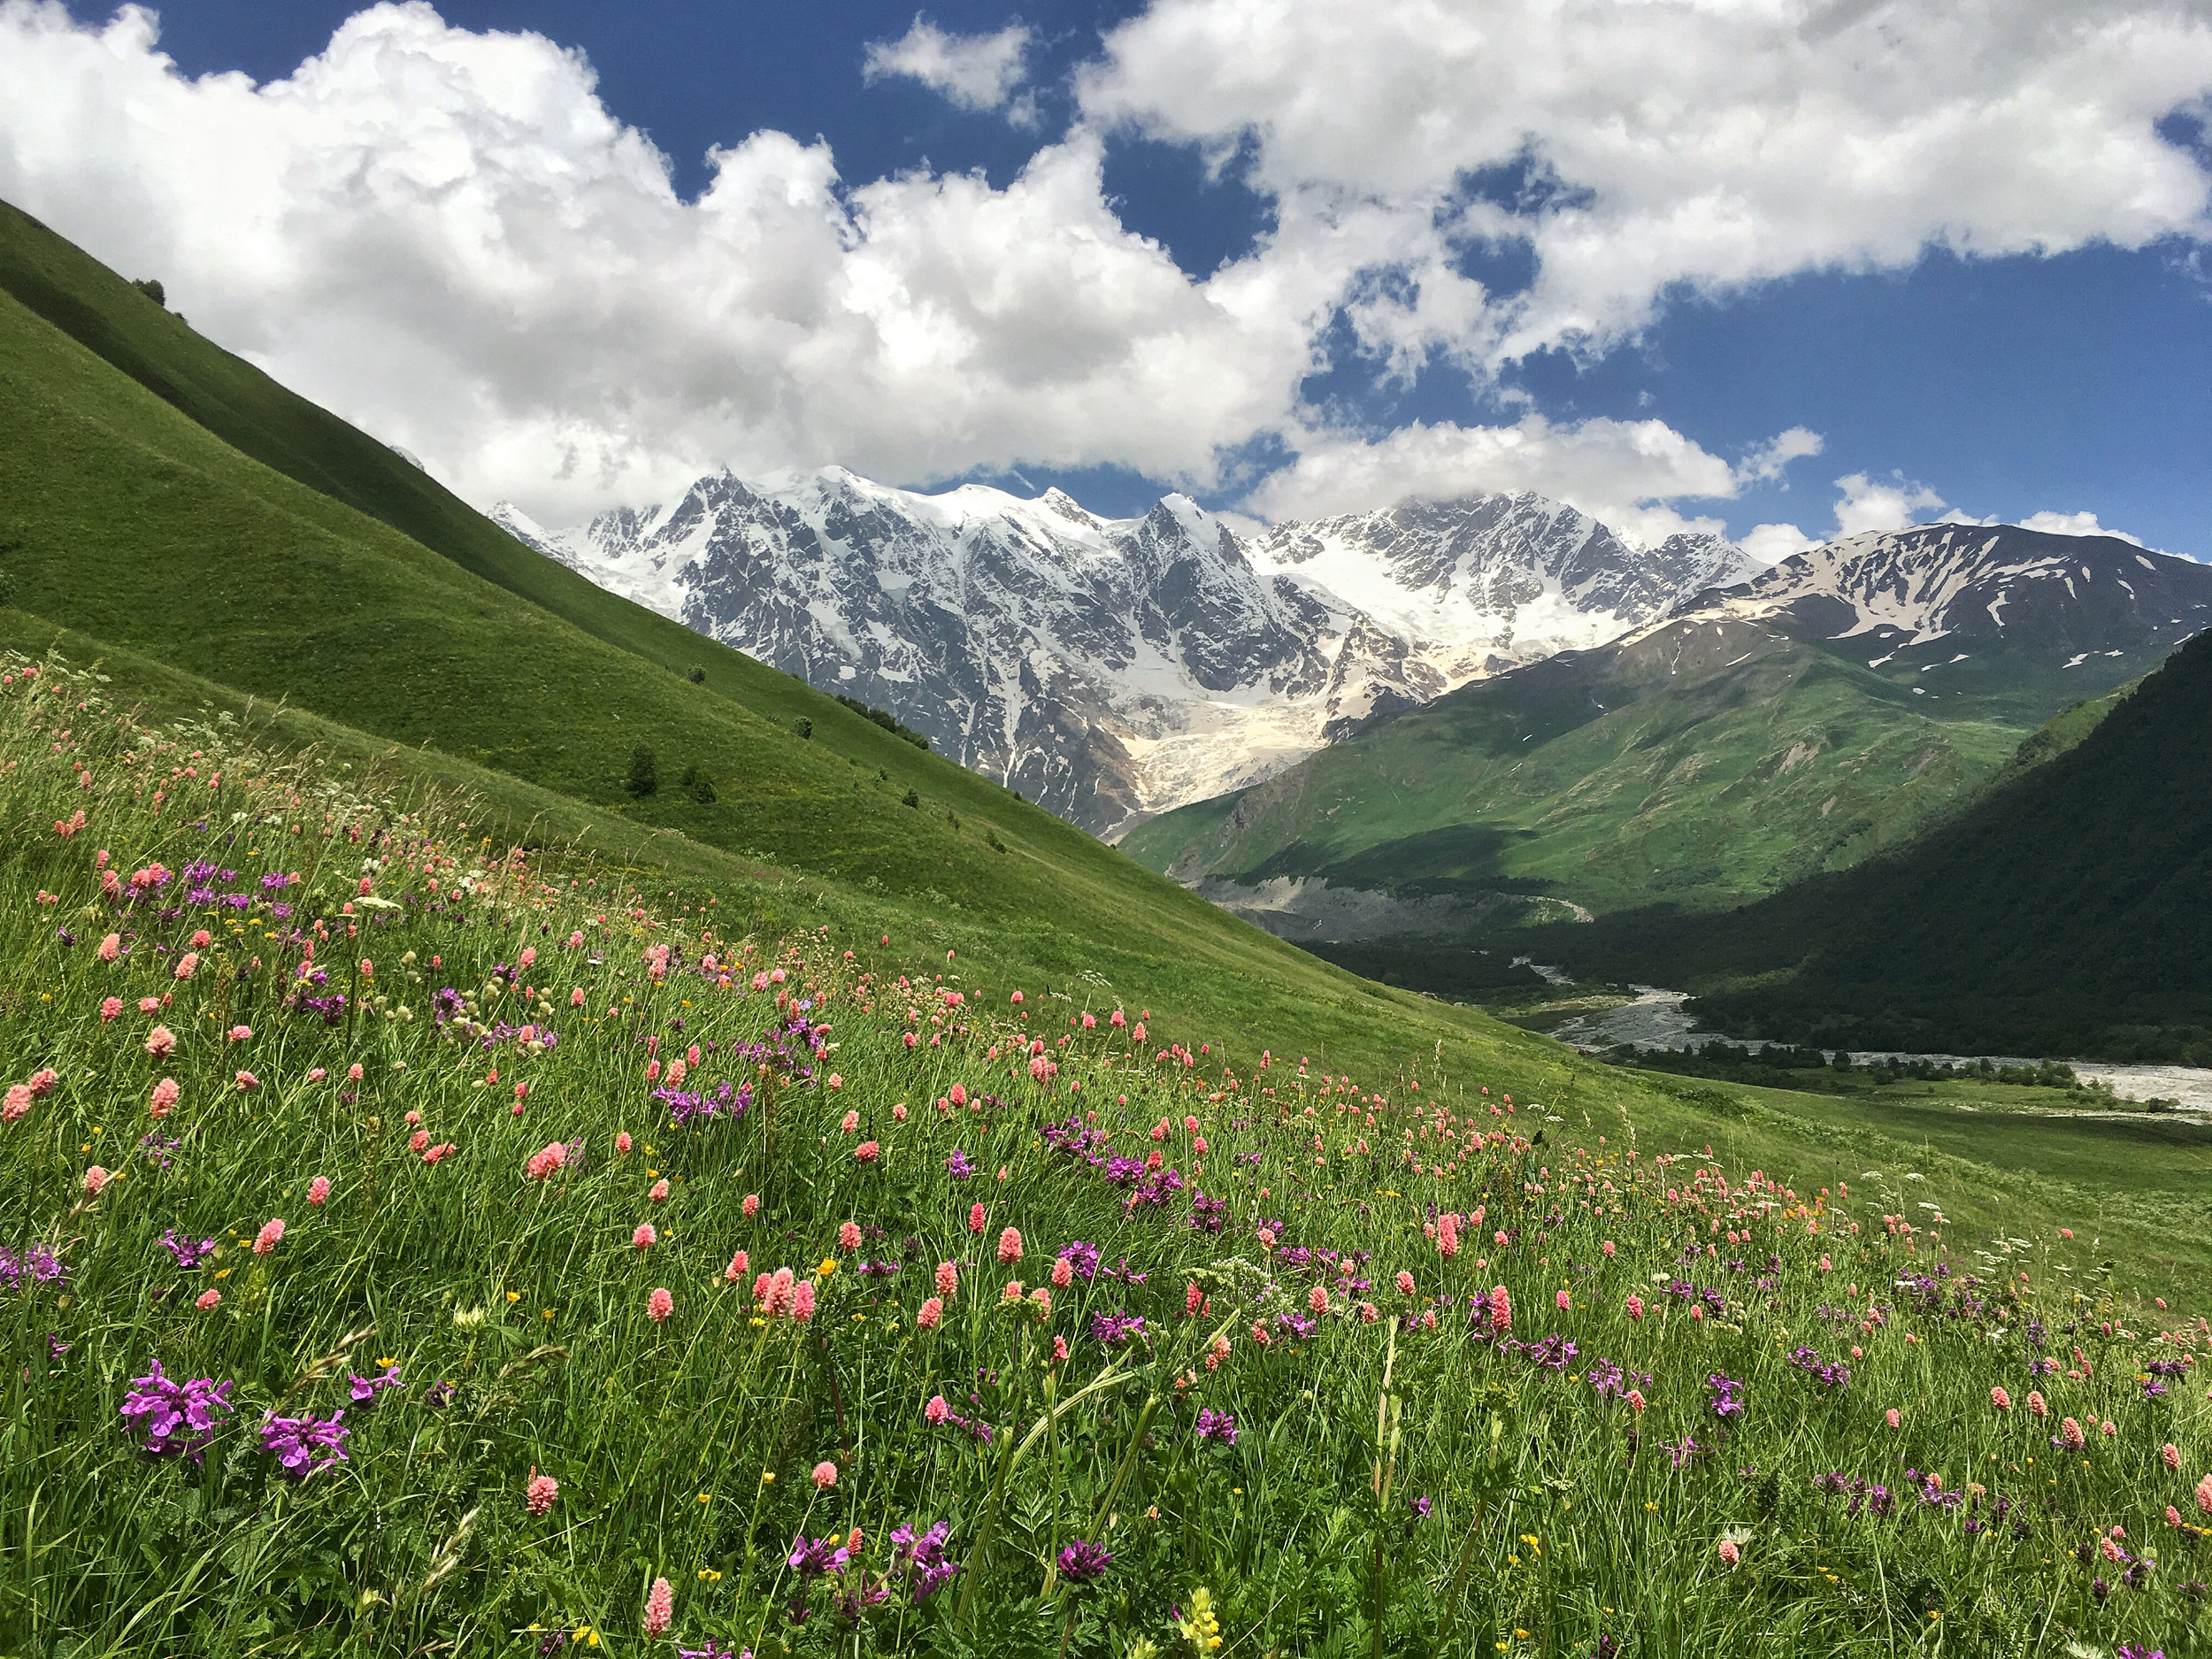 There is nothing quite like mountains and wildflowers